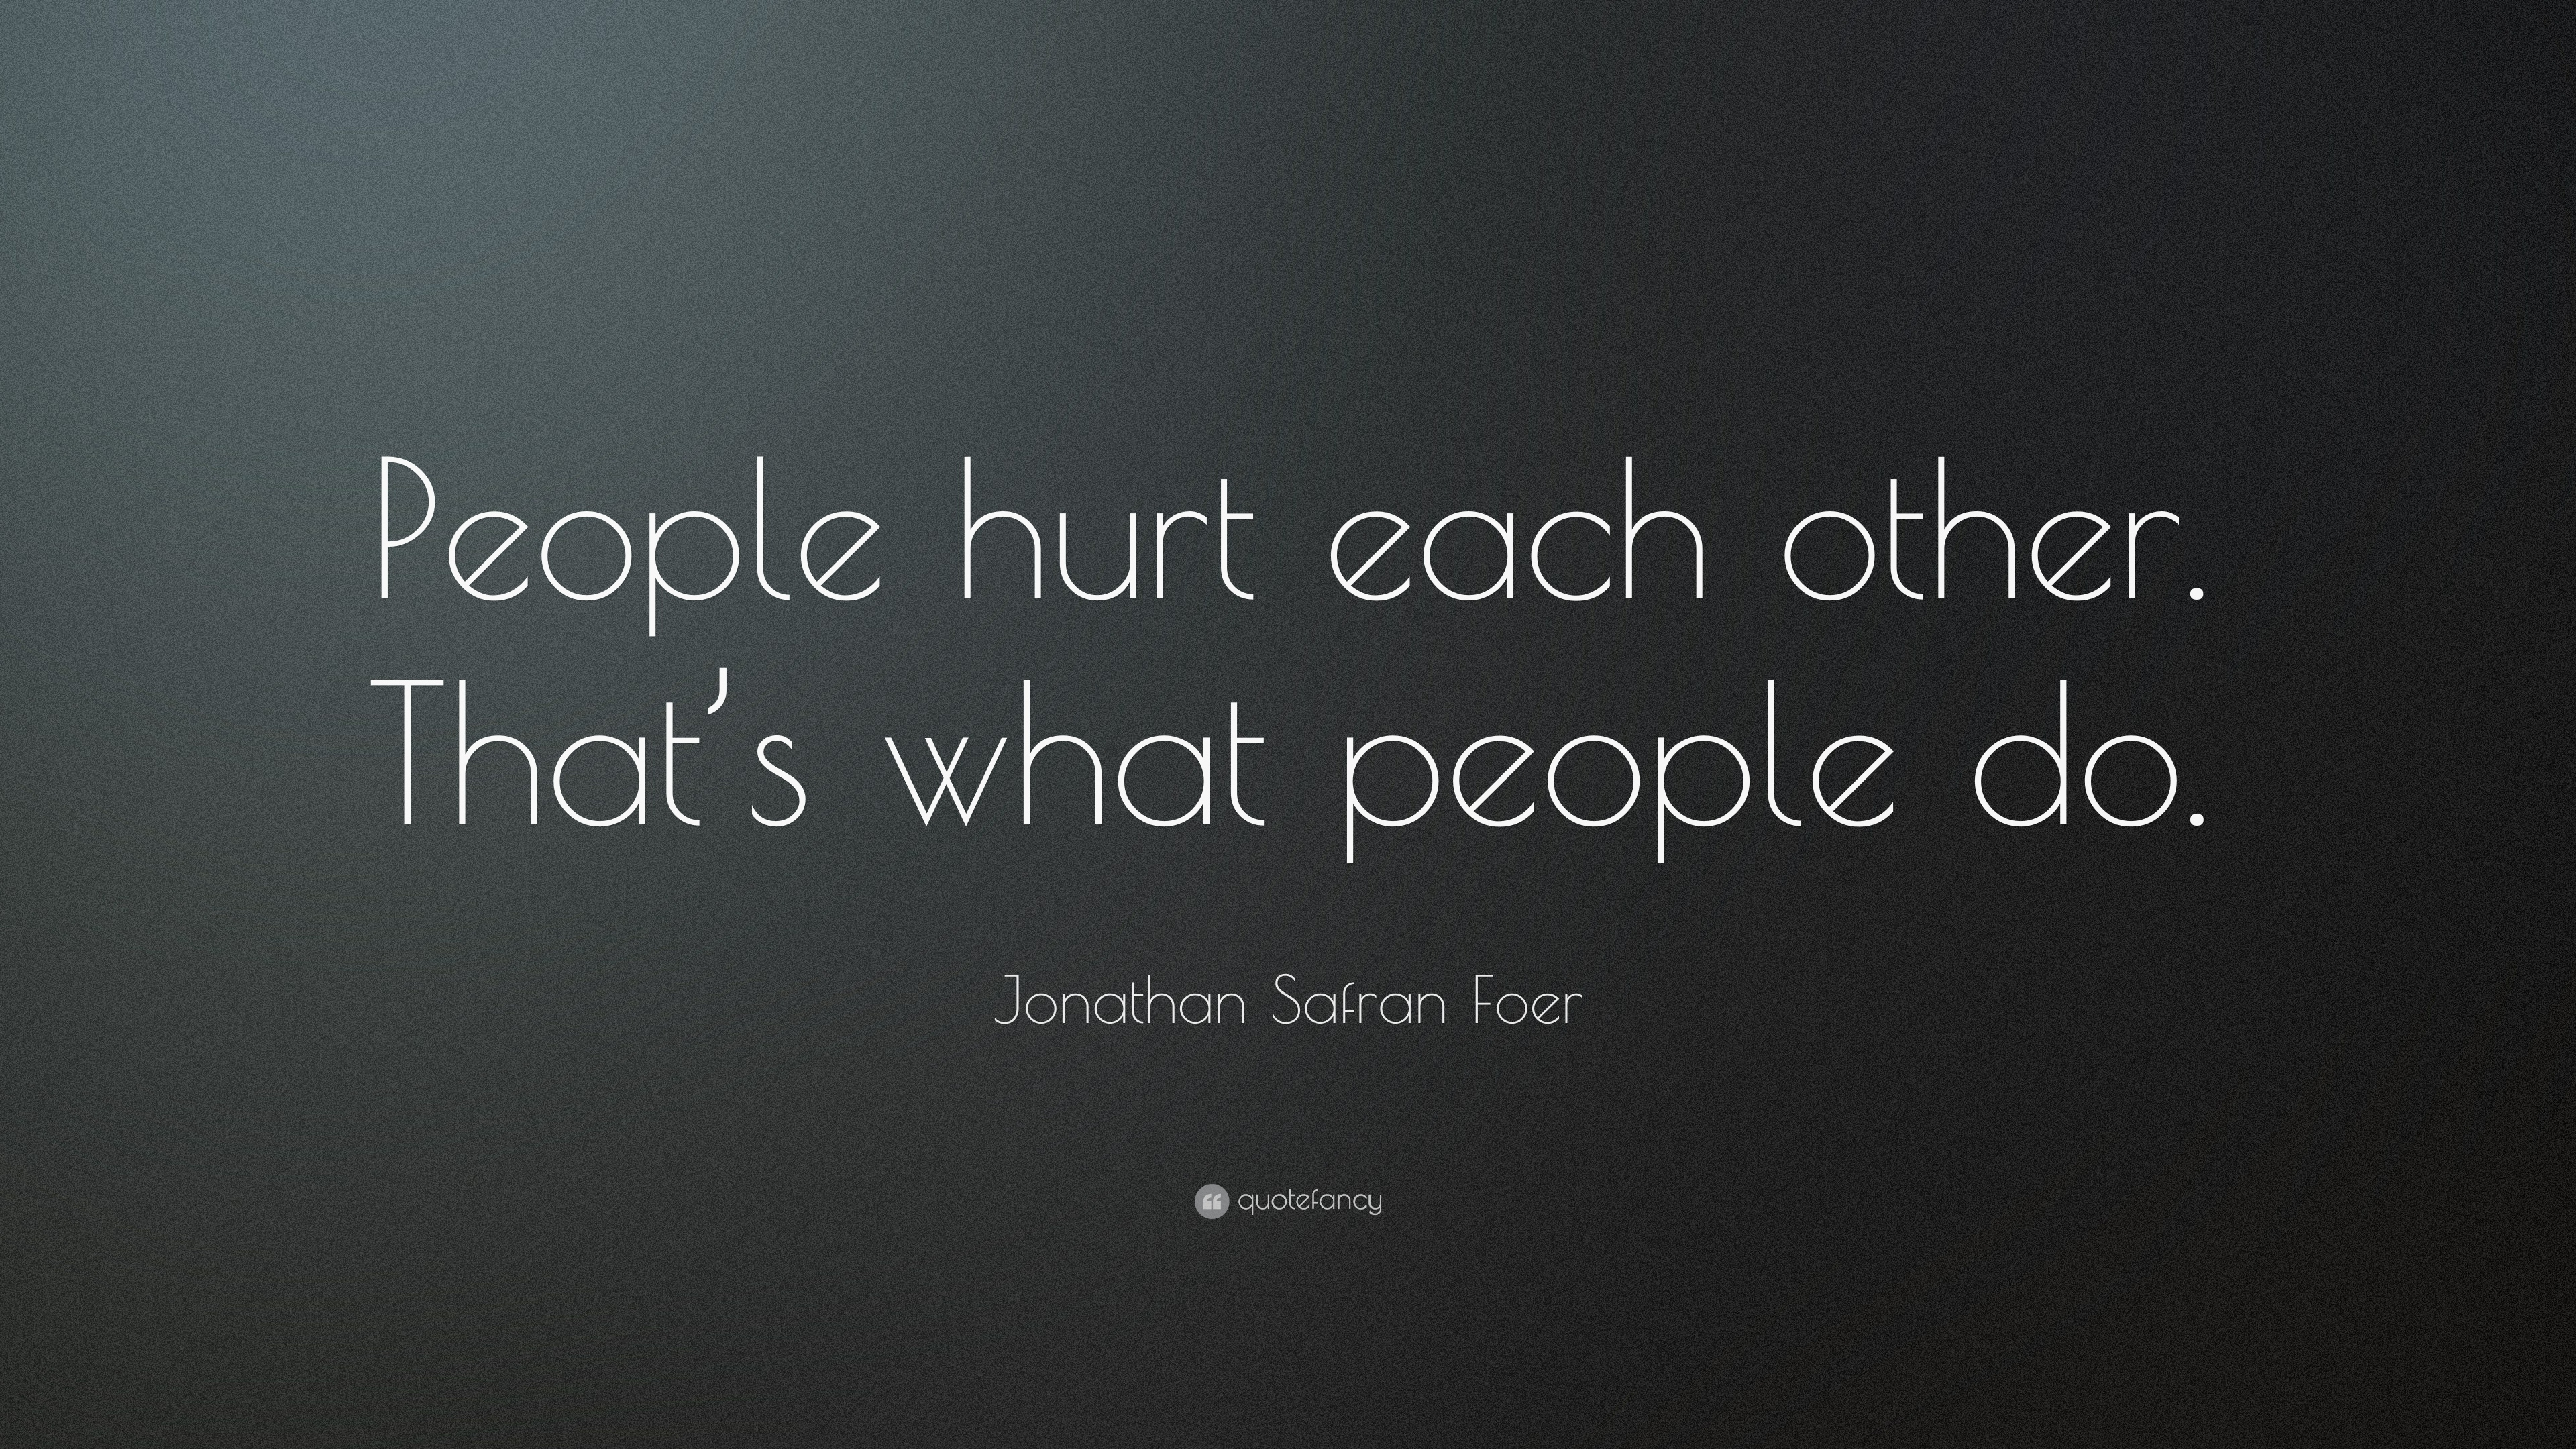 Jonathan Safran Foer Quotes (100 wallpapers) - Quotefancy